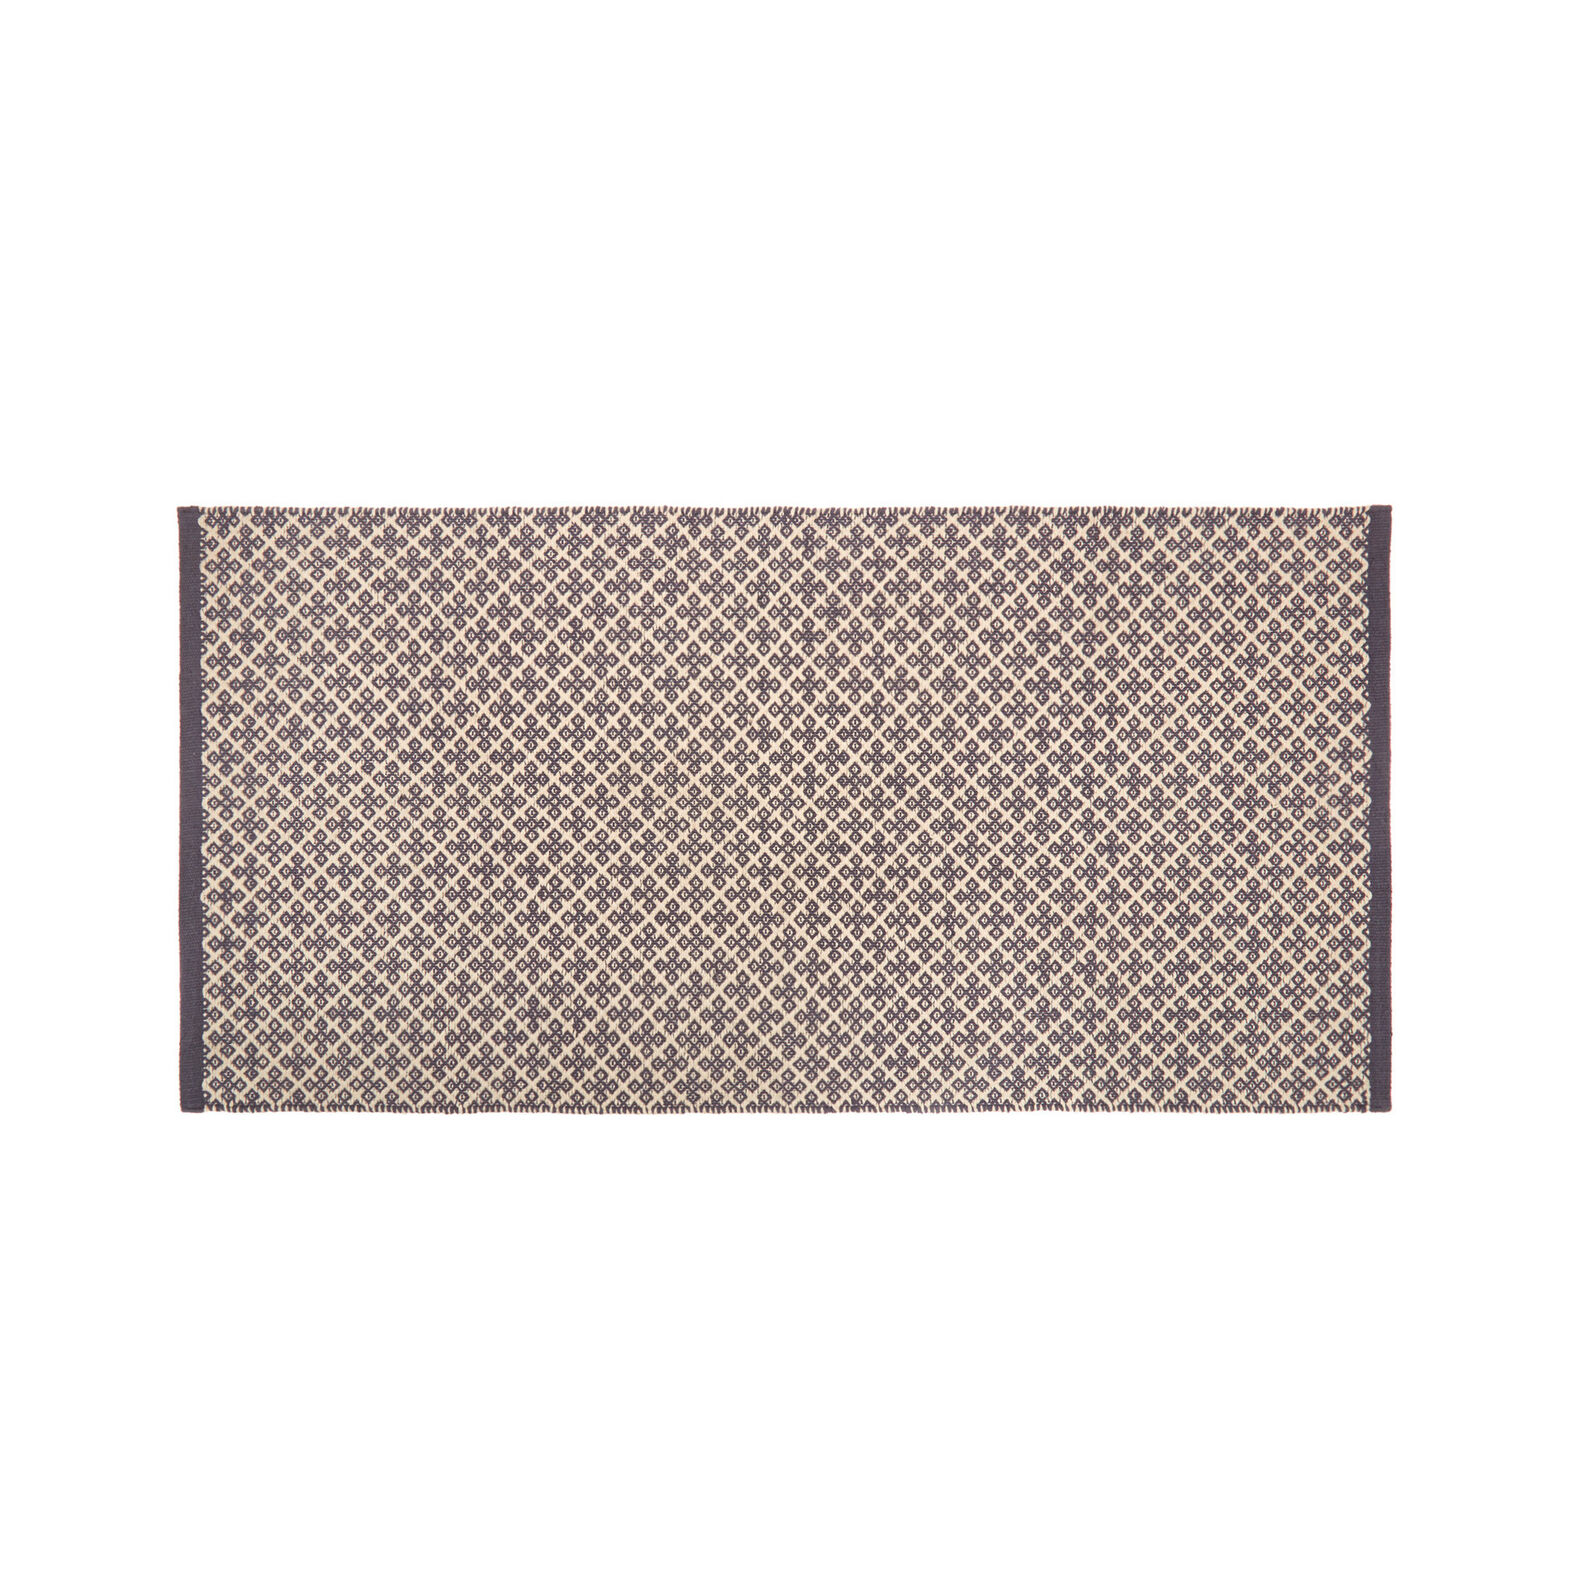 Cotton kitchen mat with jacquard weave